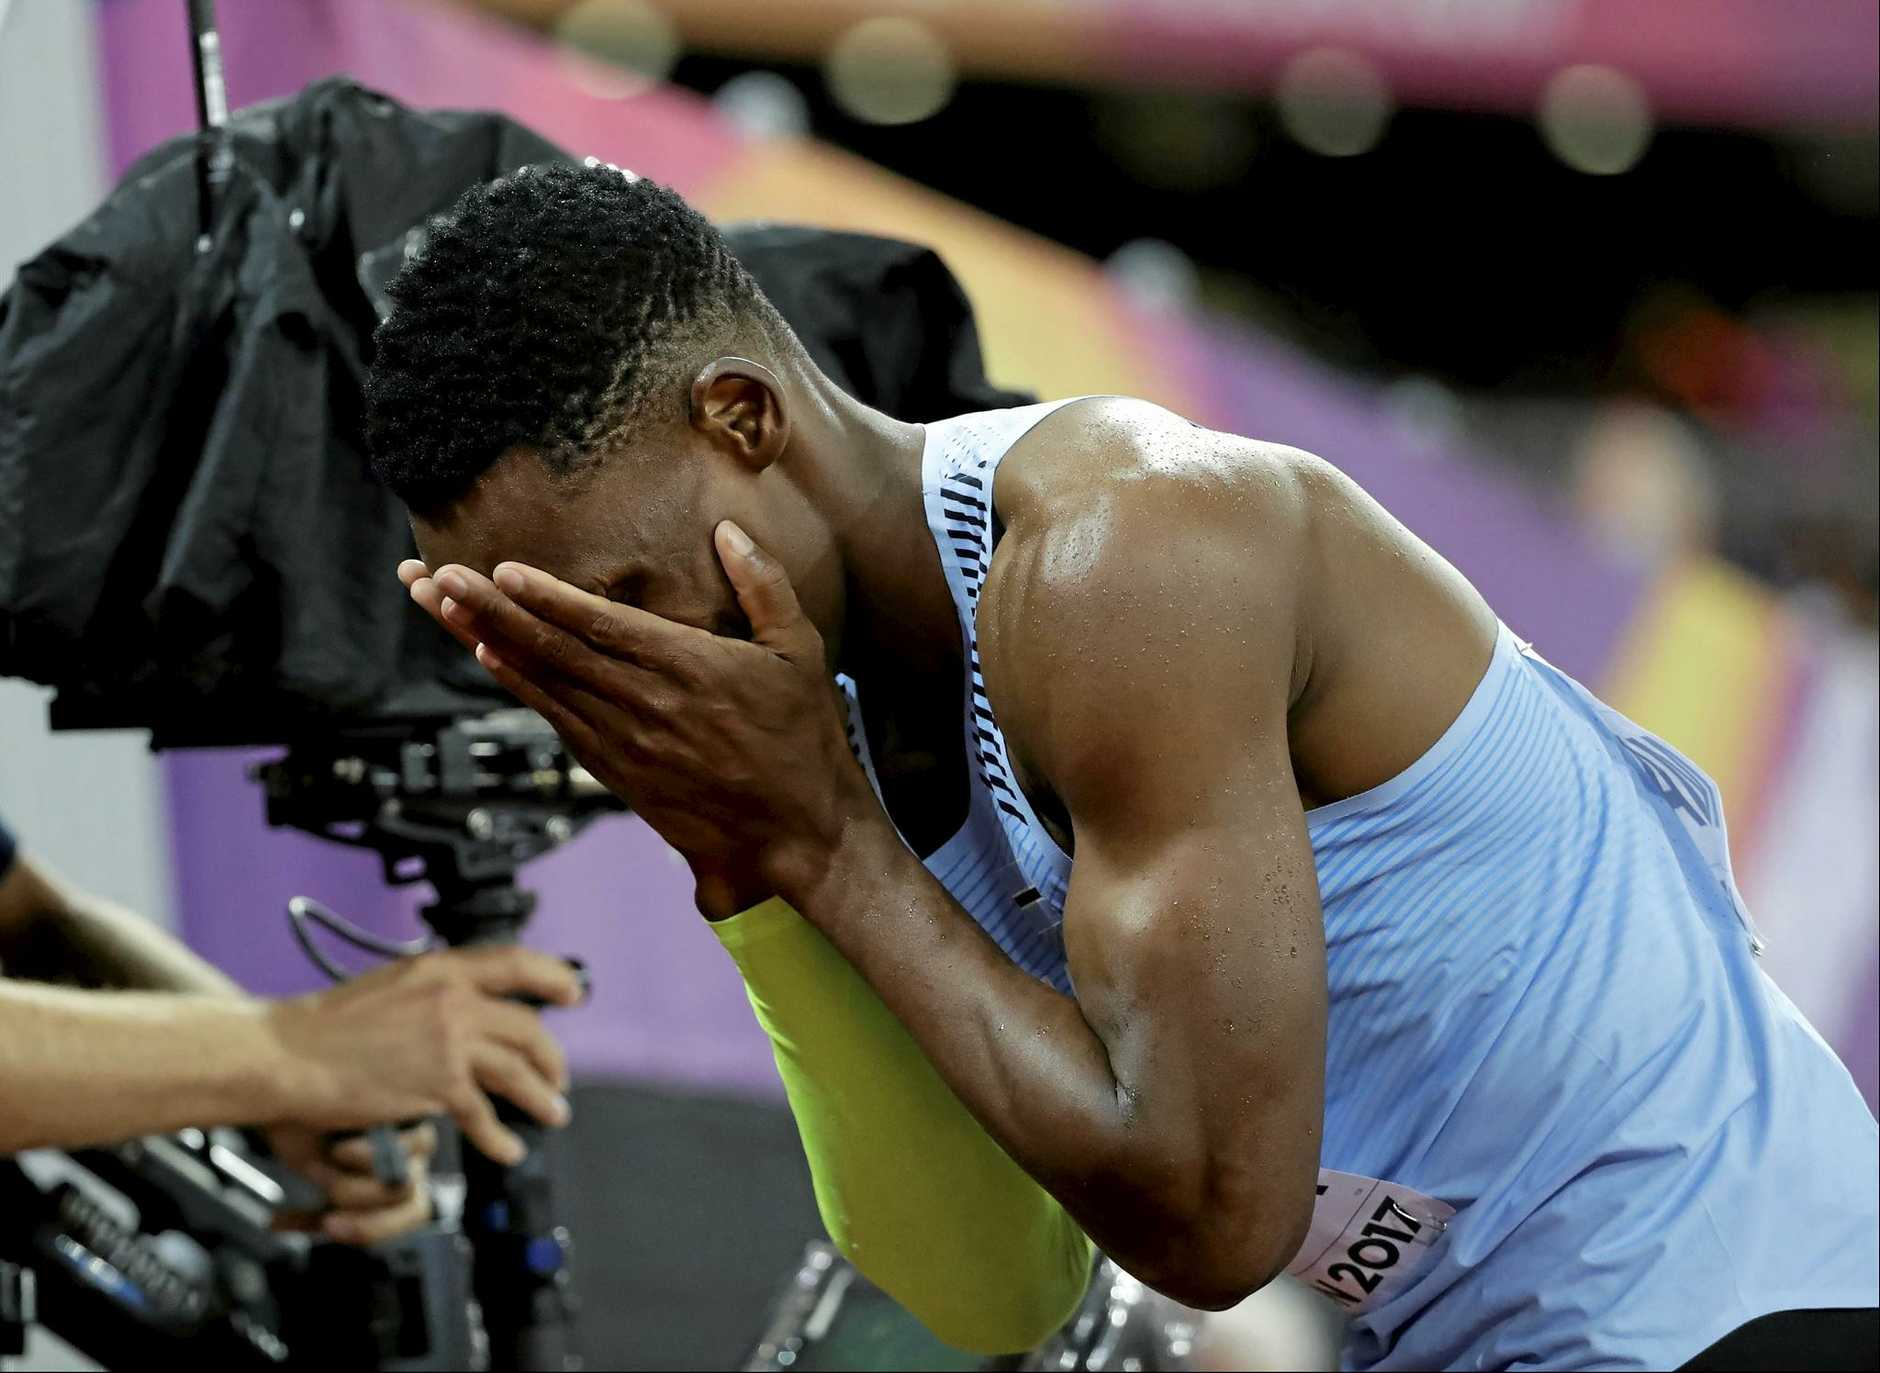 Botswana's Isaac Makwala reacts after finishing a Men's 200m semifinal